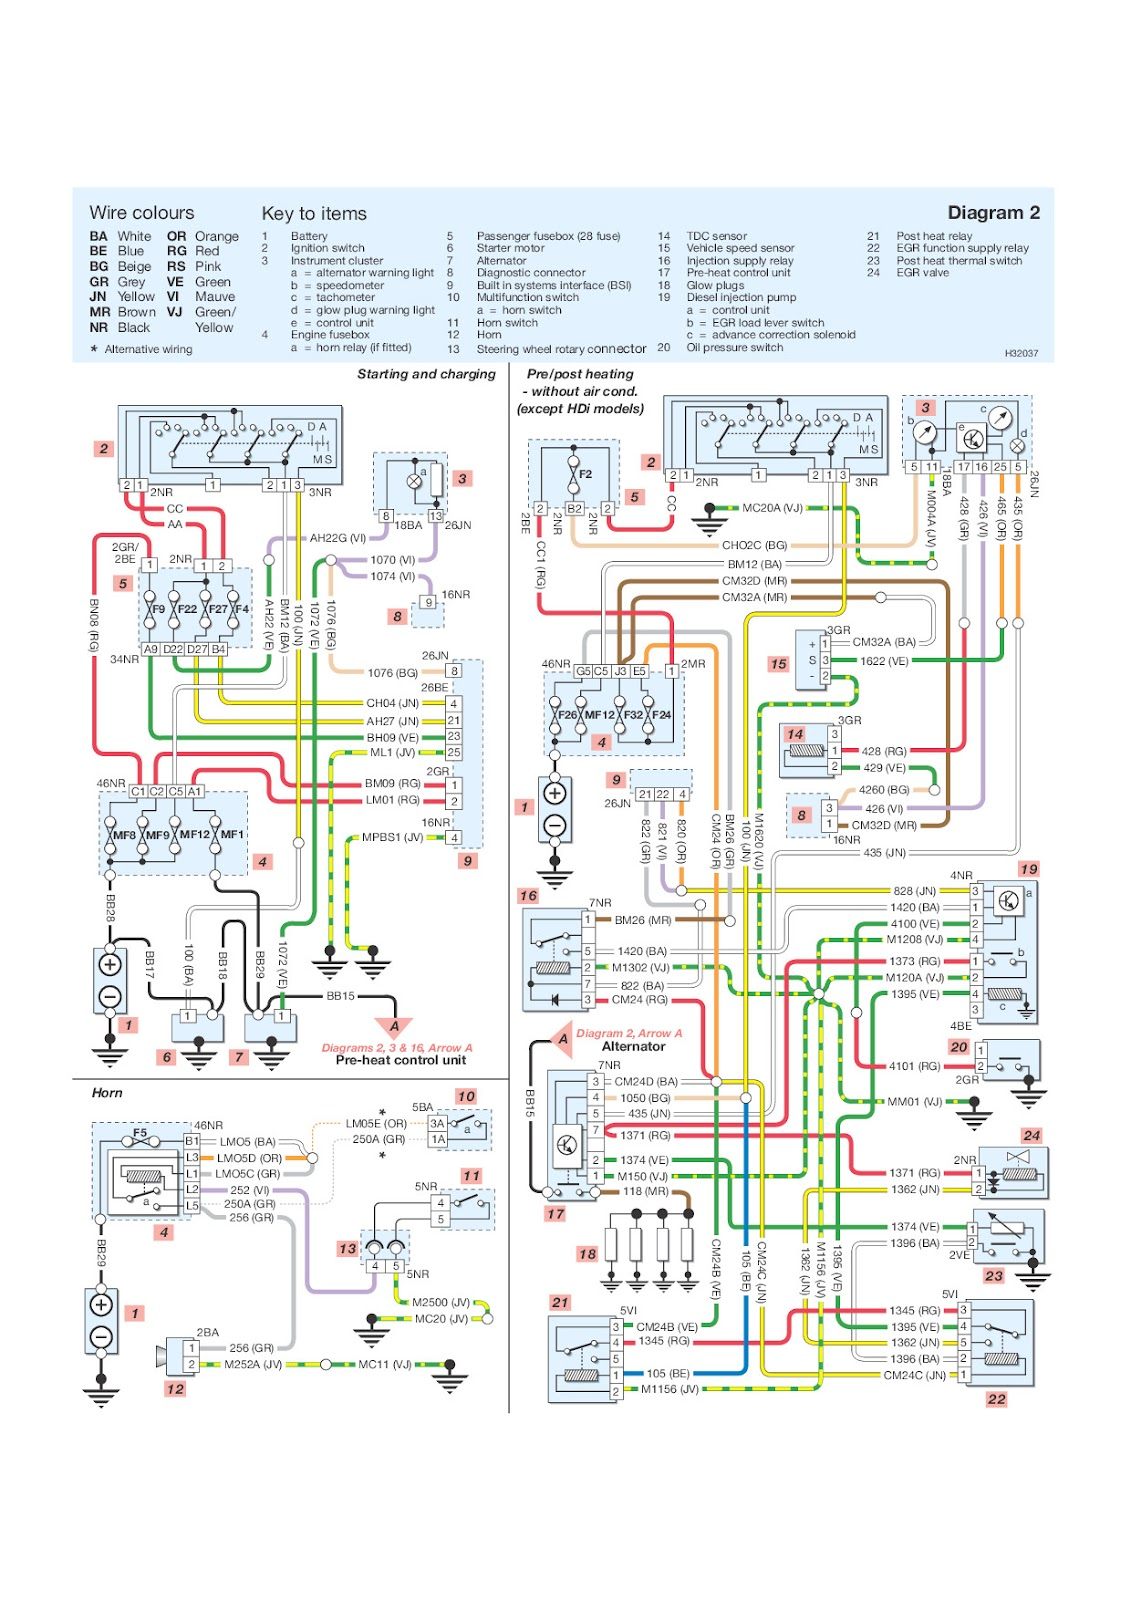 wrg 4500] peugeot 206 bsi wiring diagram Jeep Wrangler Diagram